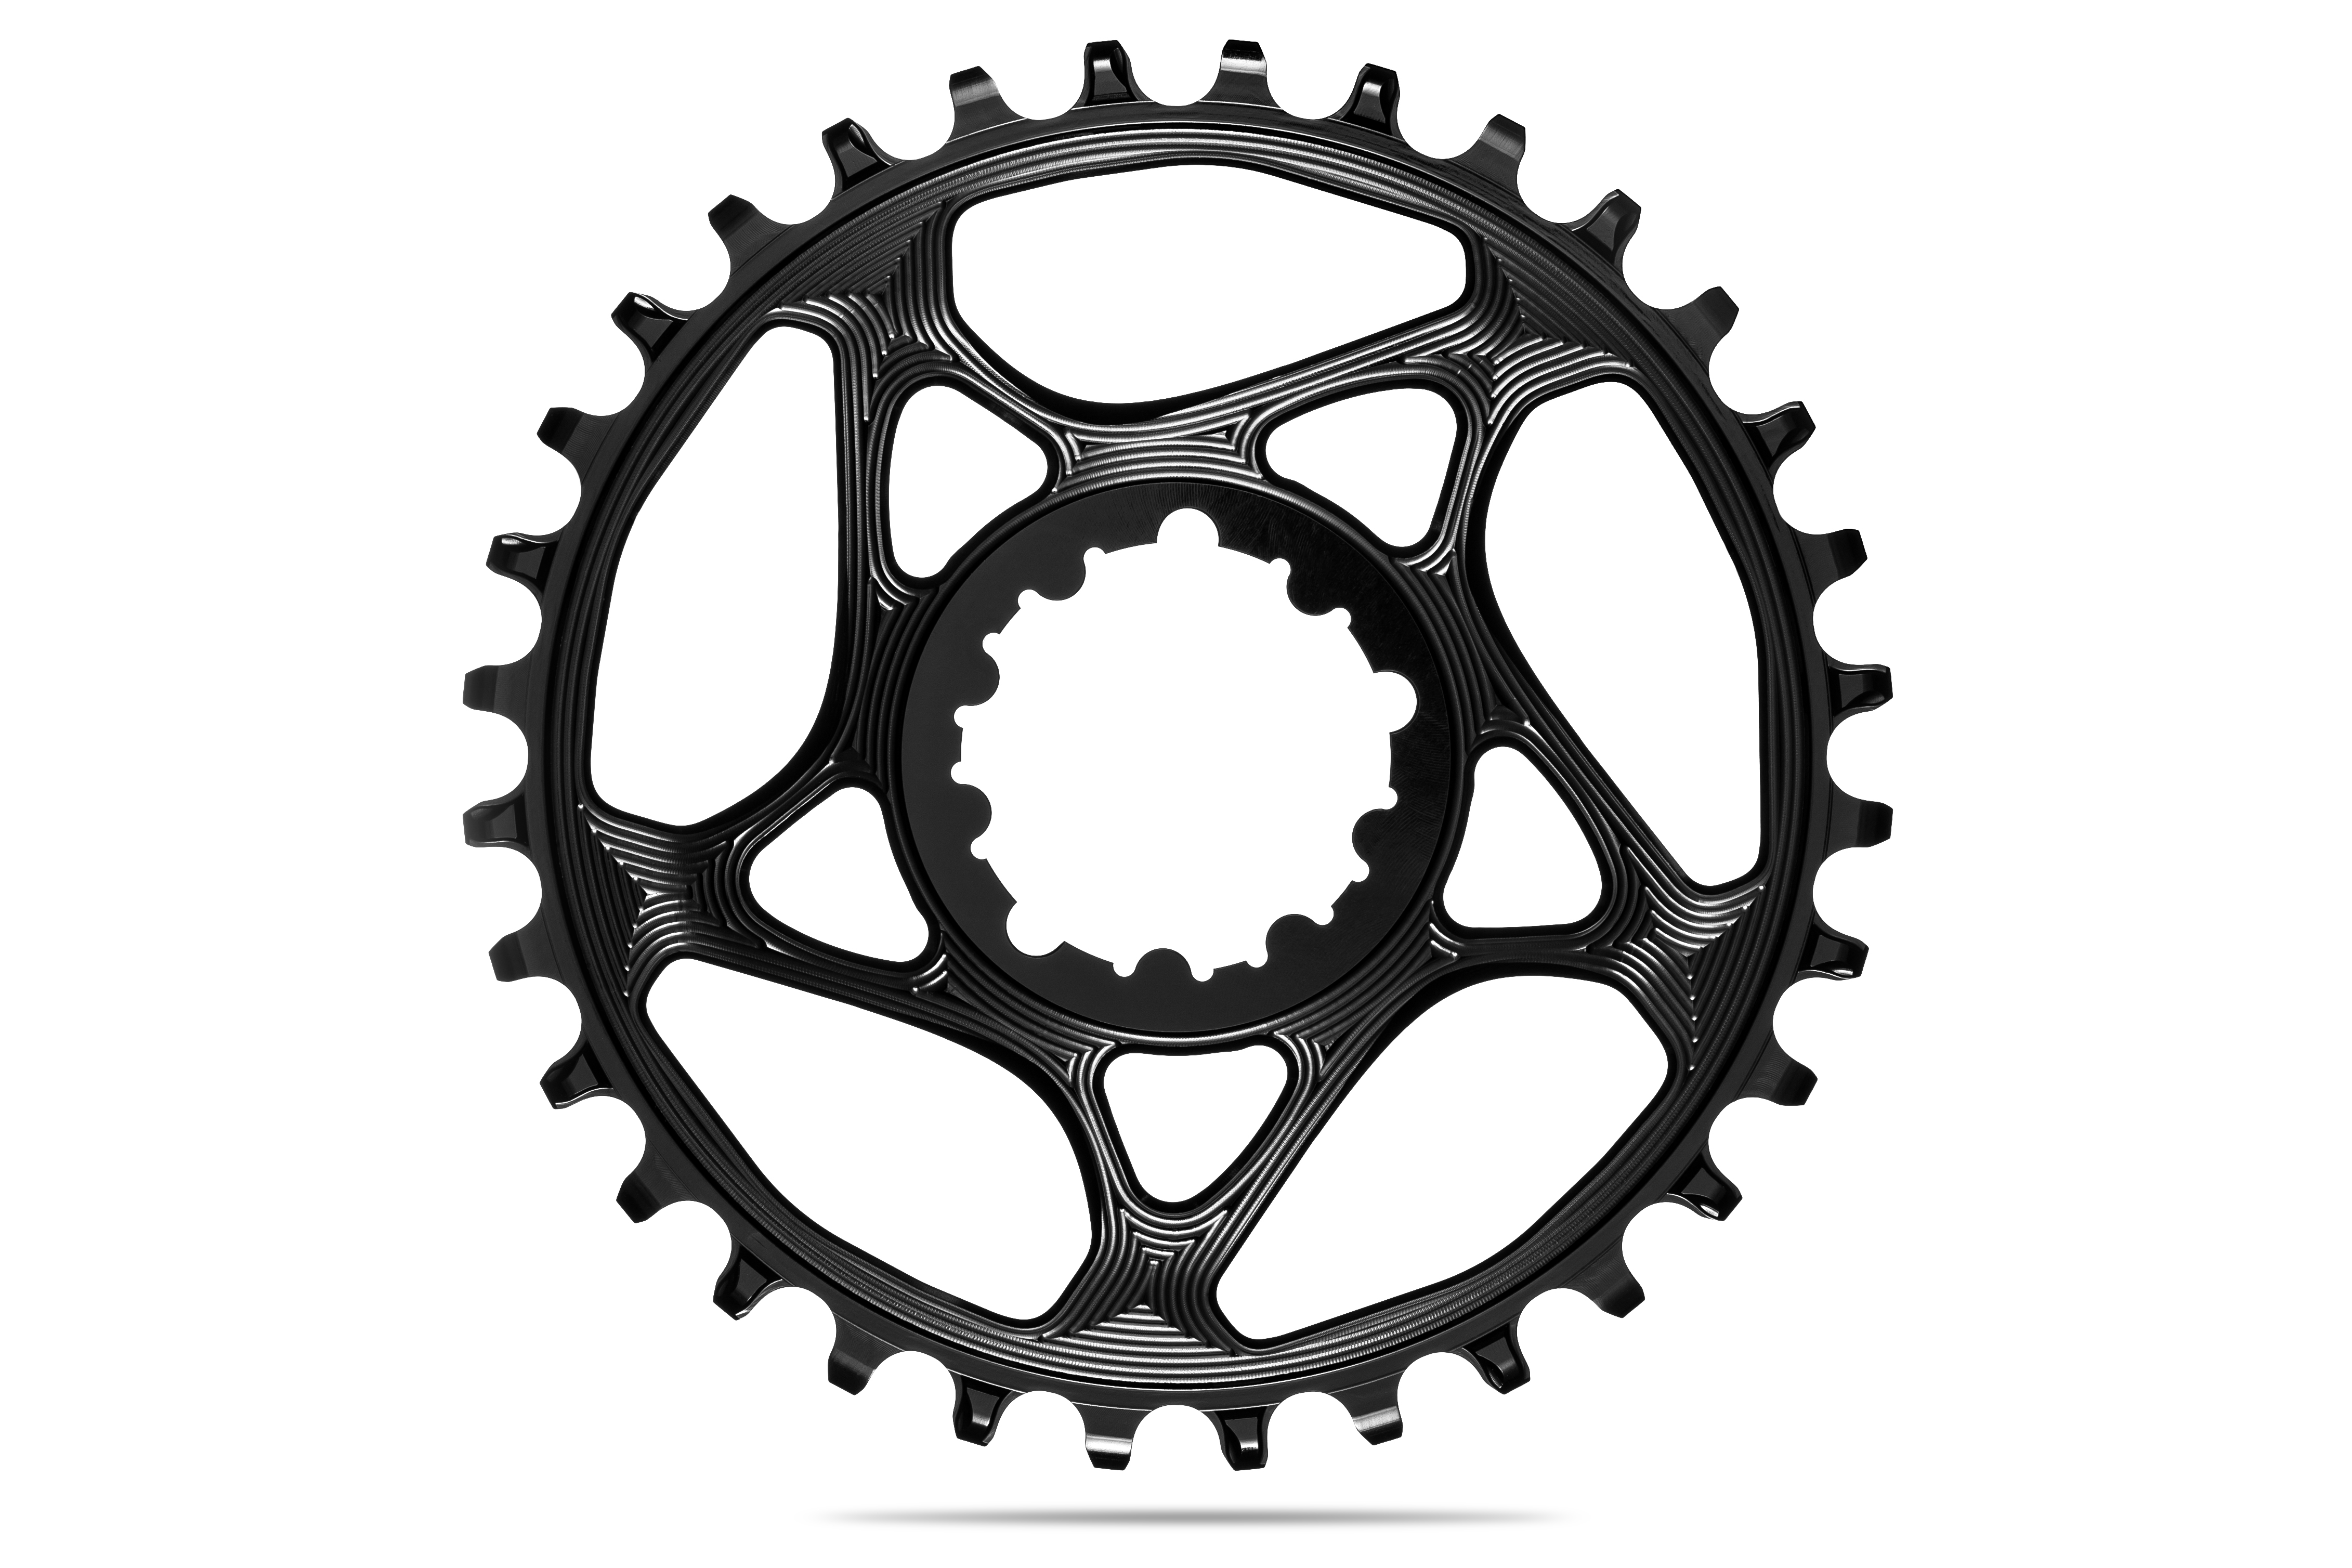 ROUND BOOST N/W CHAINRING FOR SRAM